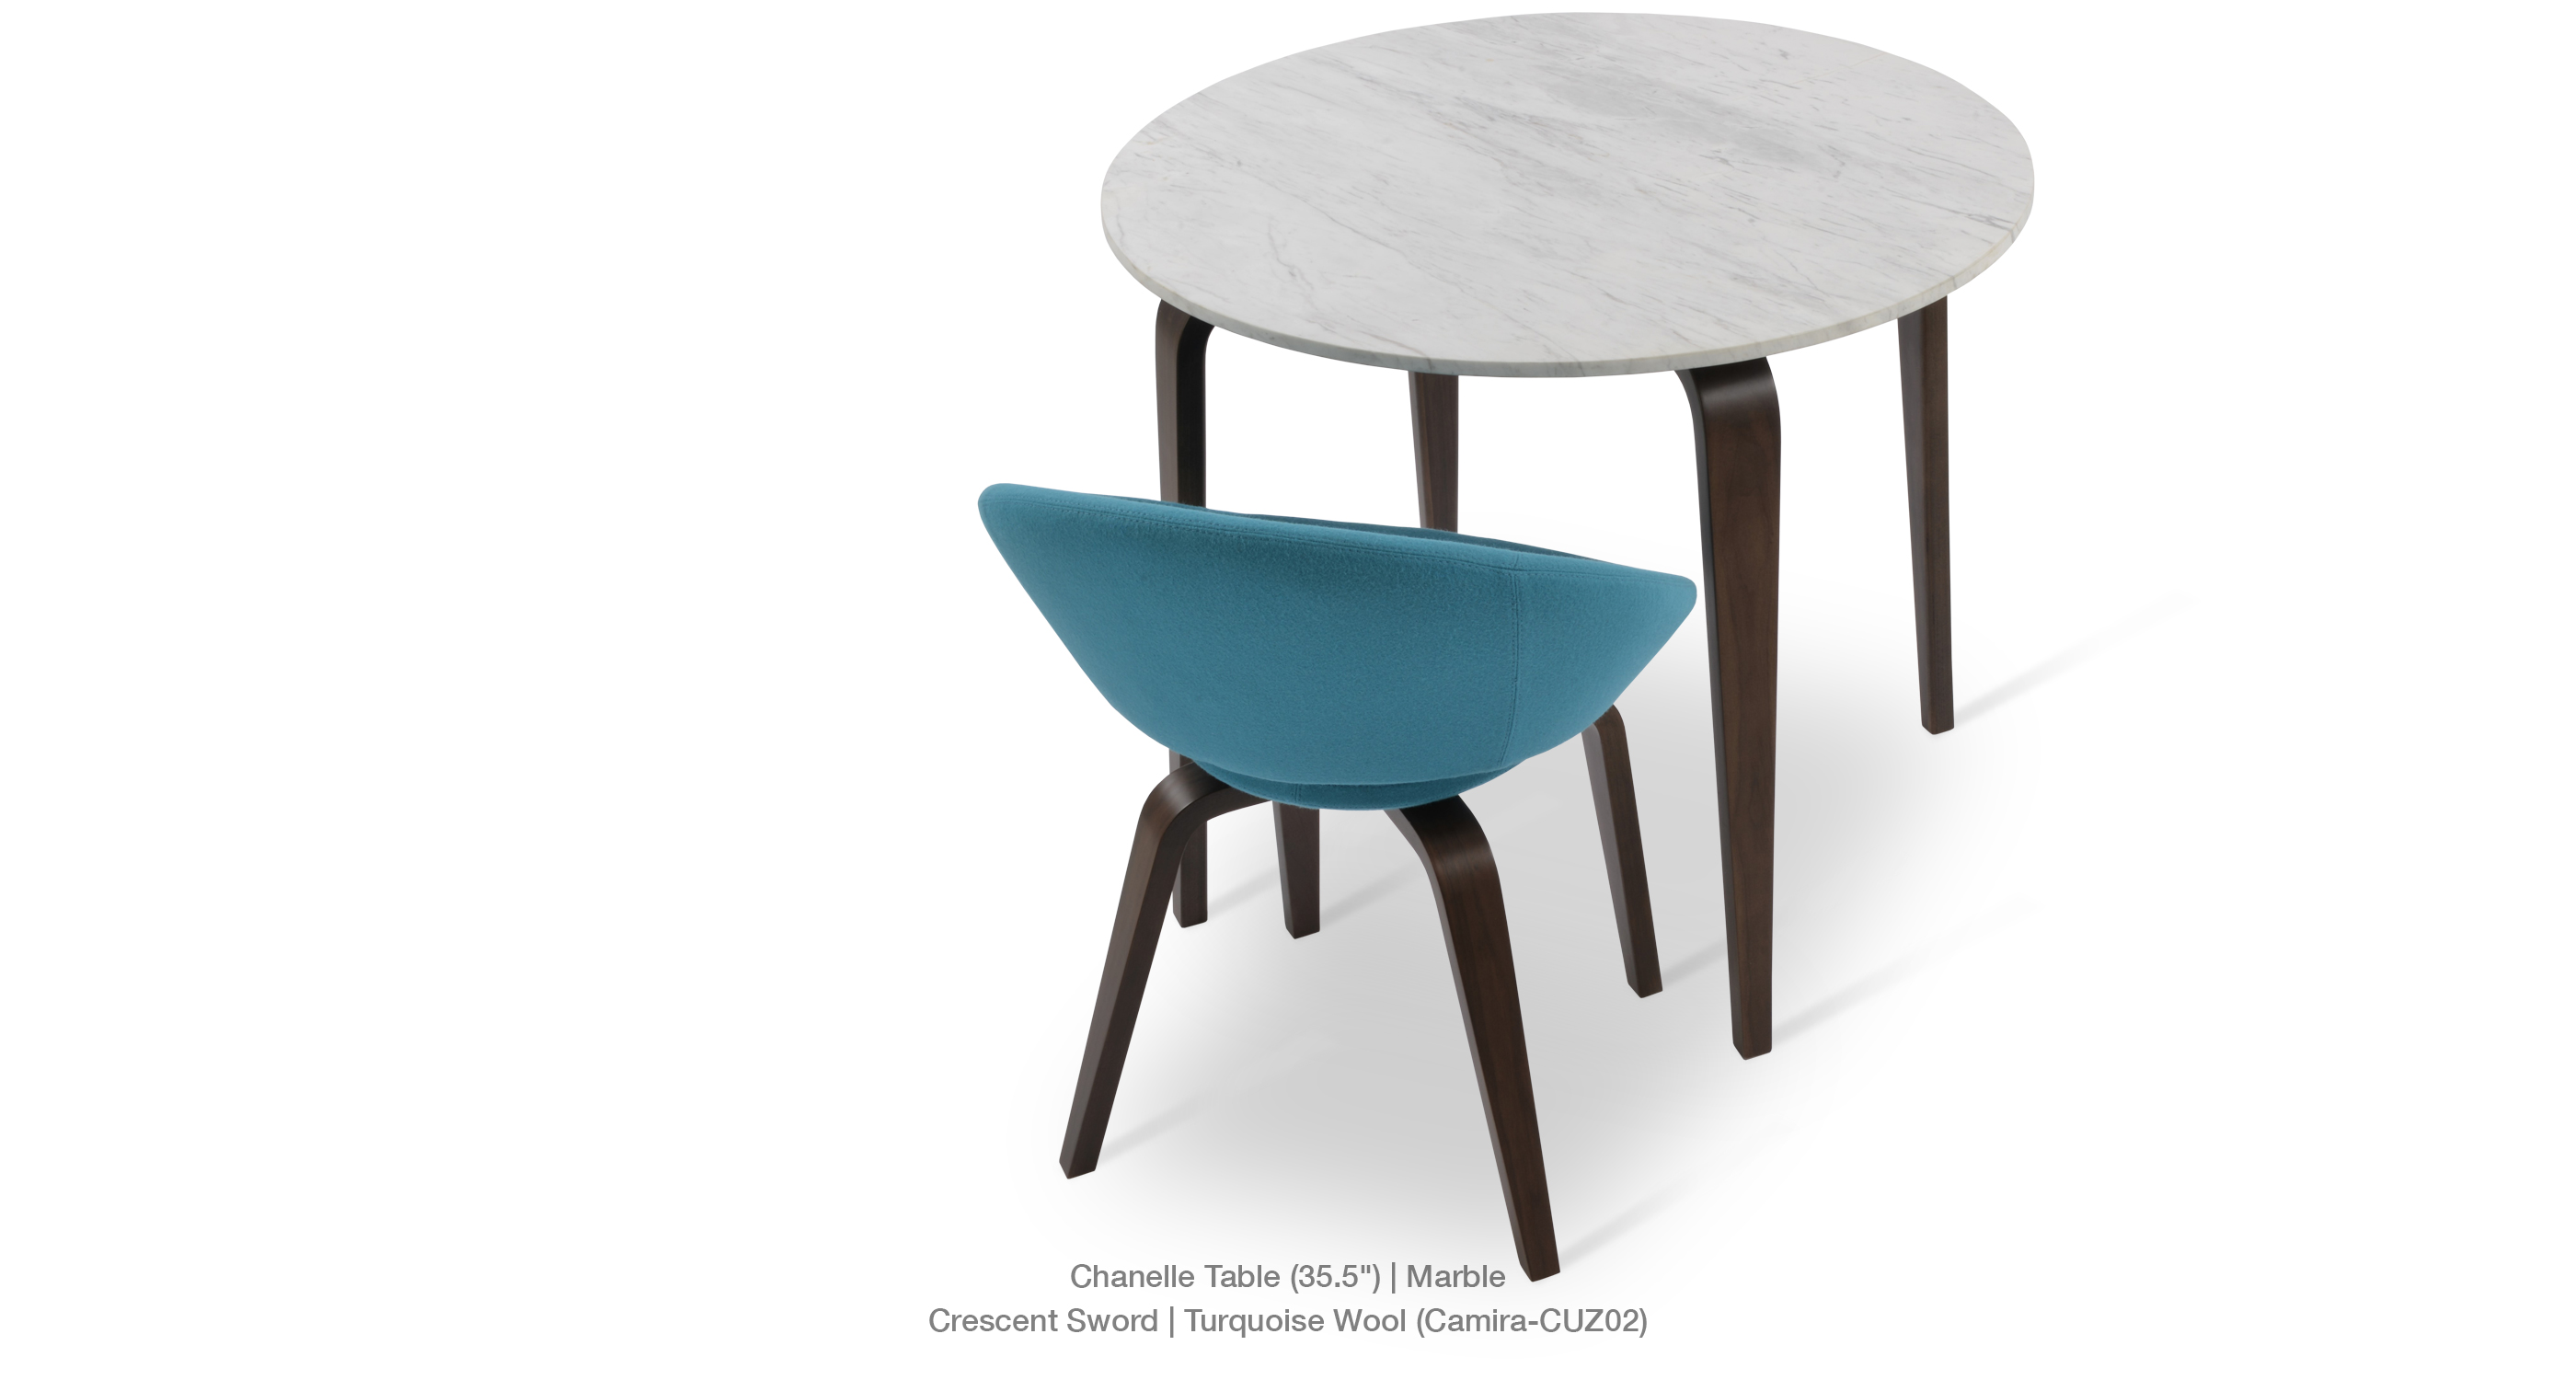 dining chair seat cover material cheap egg crescent plywood | modern chairs & furniture sohoconcept